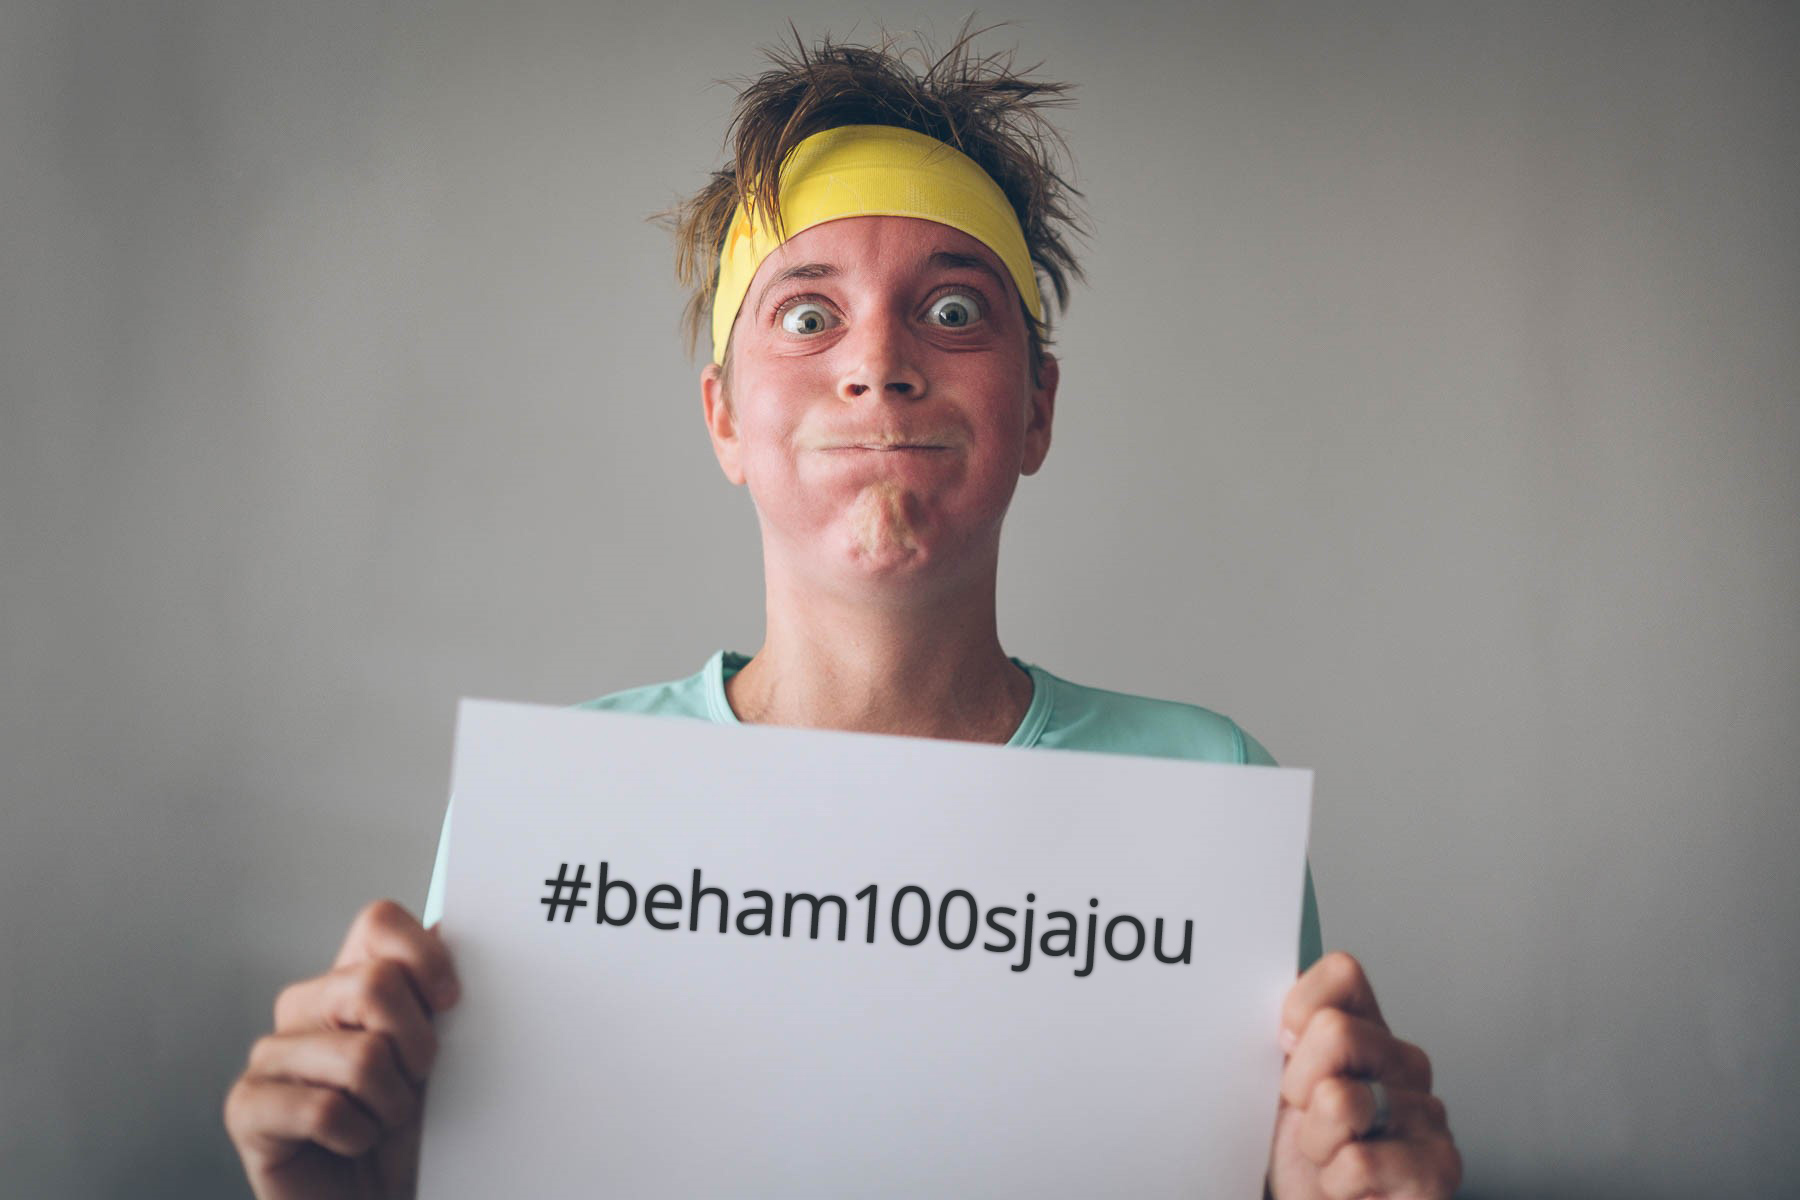 #beham100sjajou